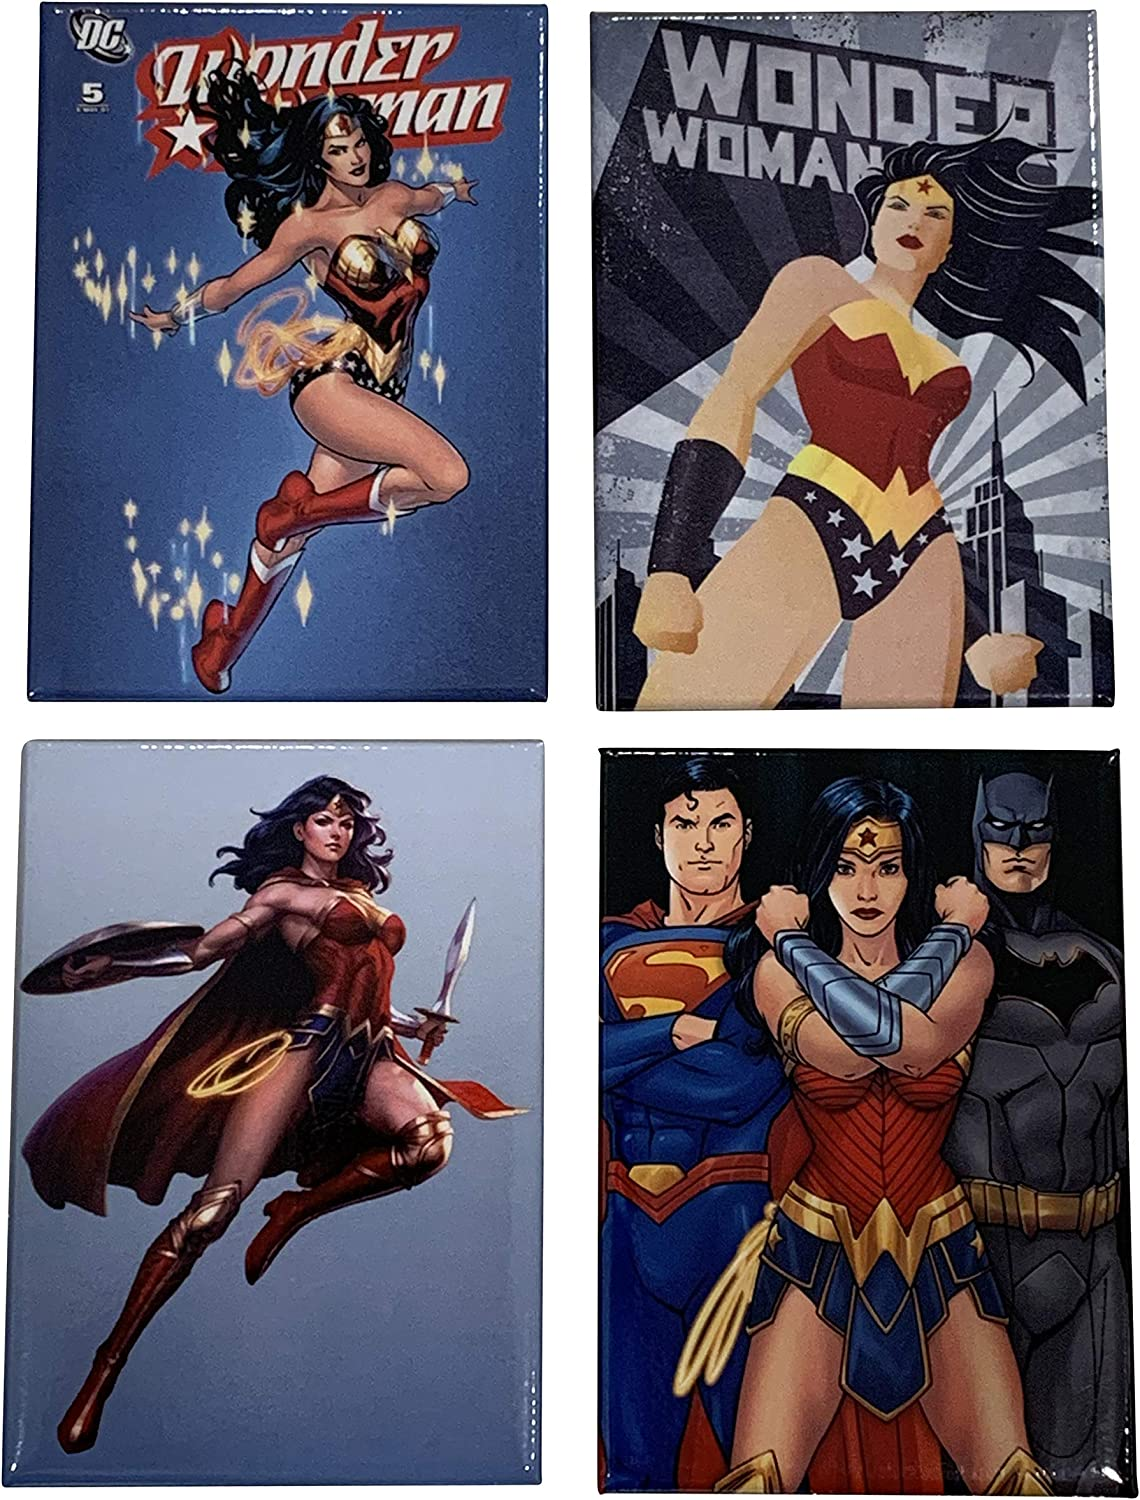 Wonder Woman Refrigerator Magnet Collection. Set of 4 Magnets Featuring Wonder Woman, Batman, and Superman